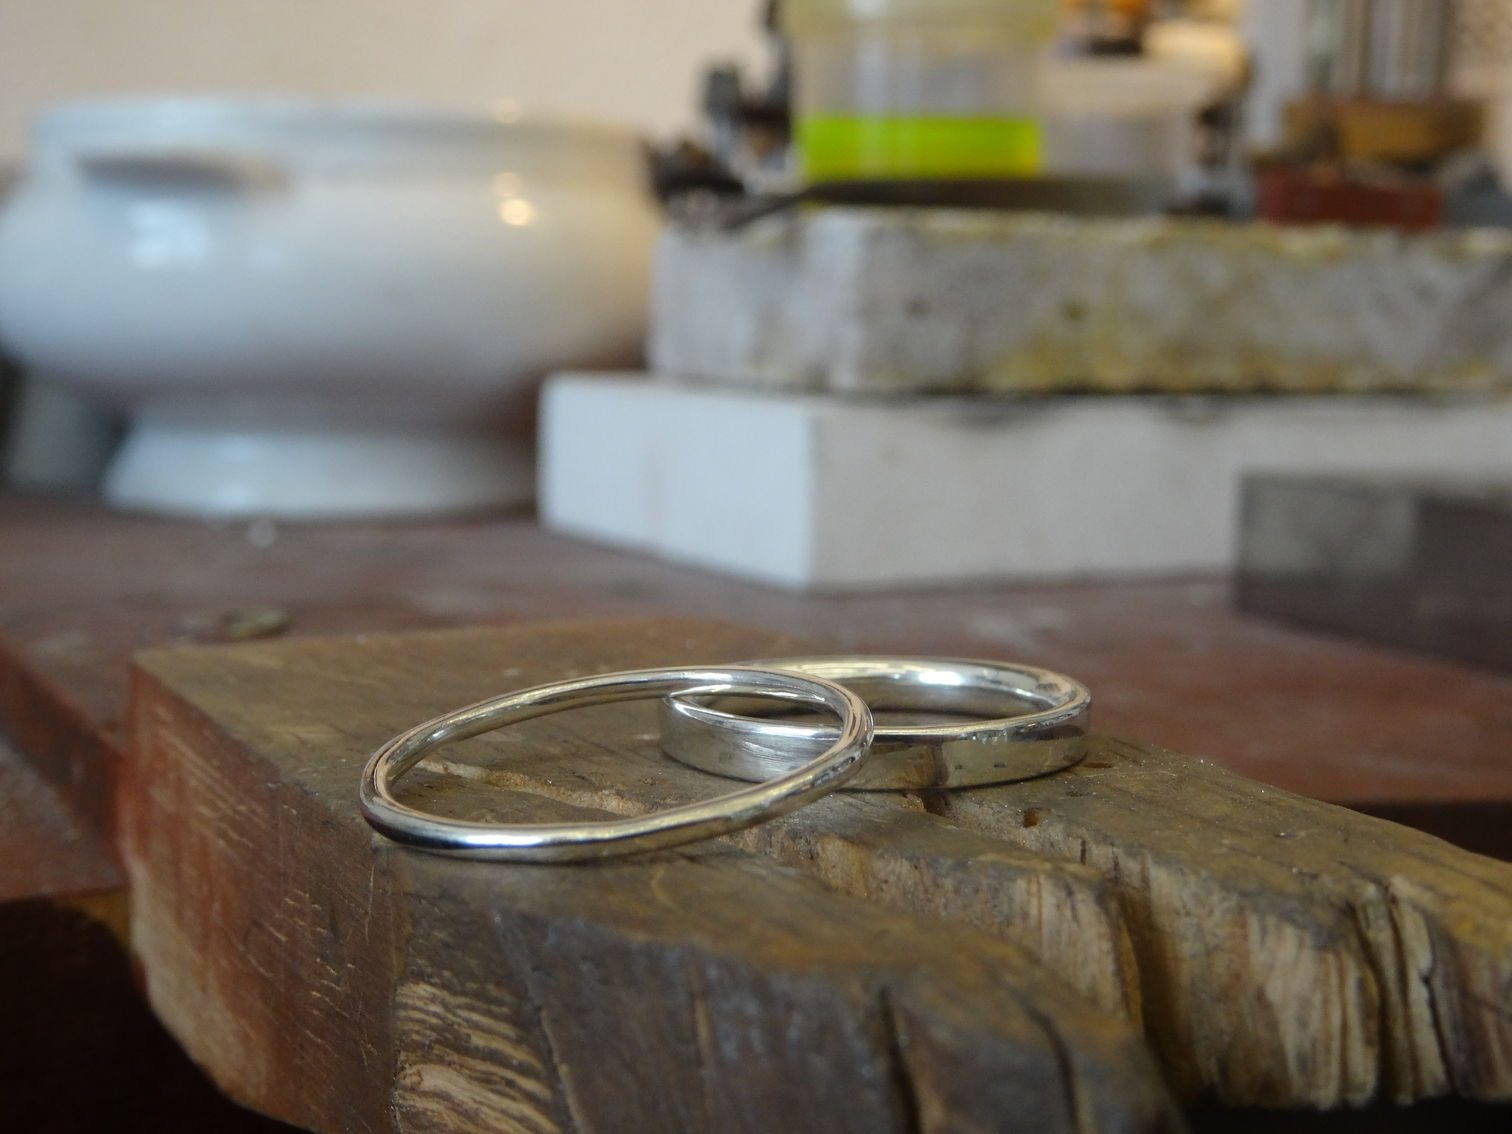 The finished wedding rings